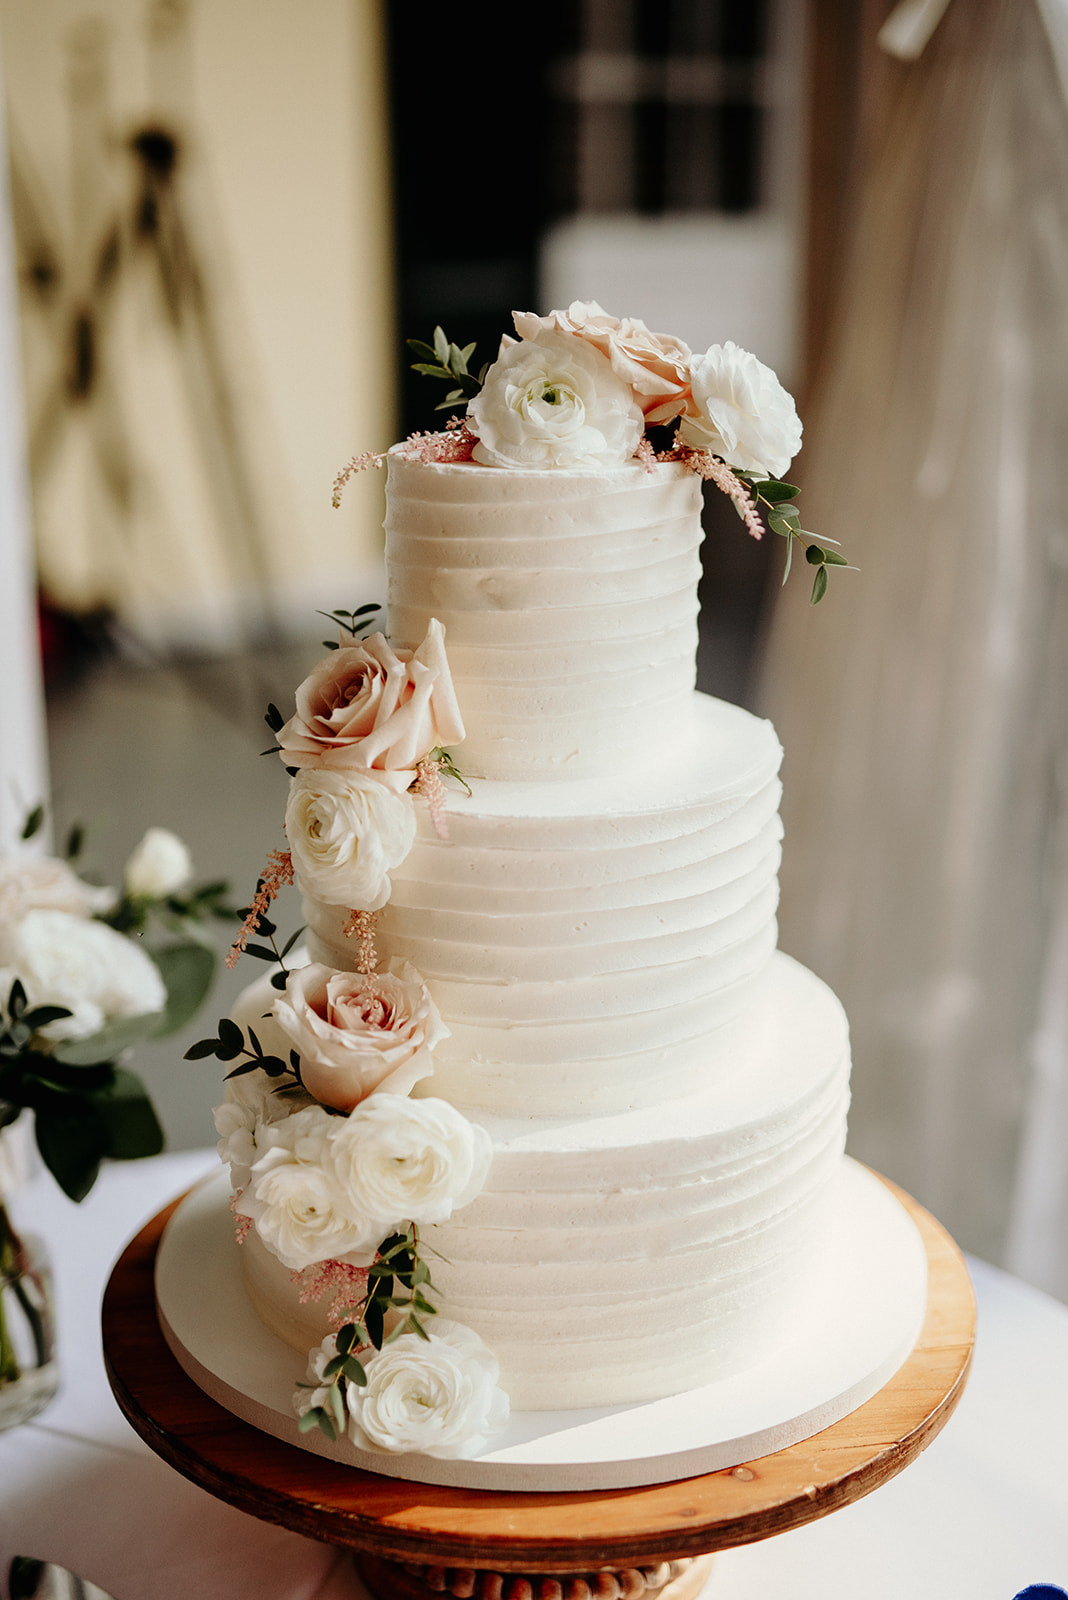 Simple, minimal, floral cake at Drumore Estate wedding.